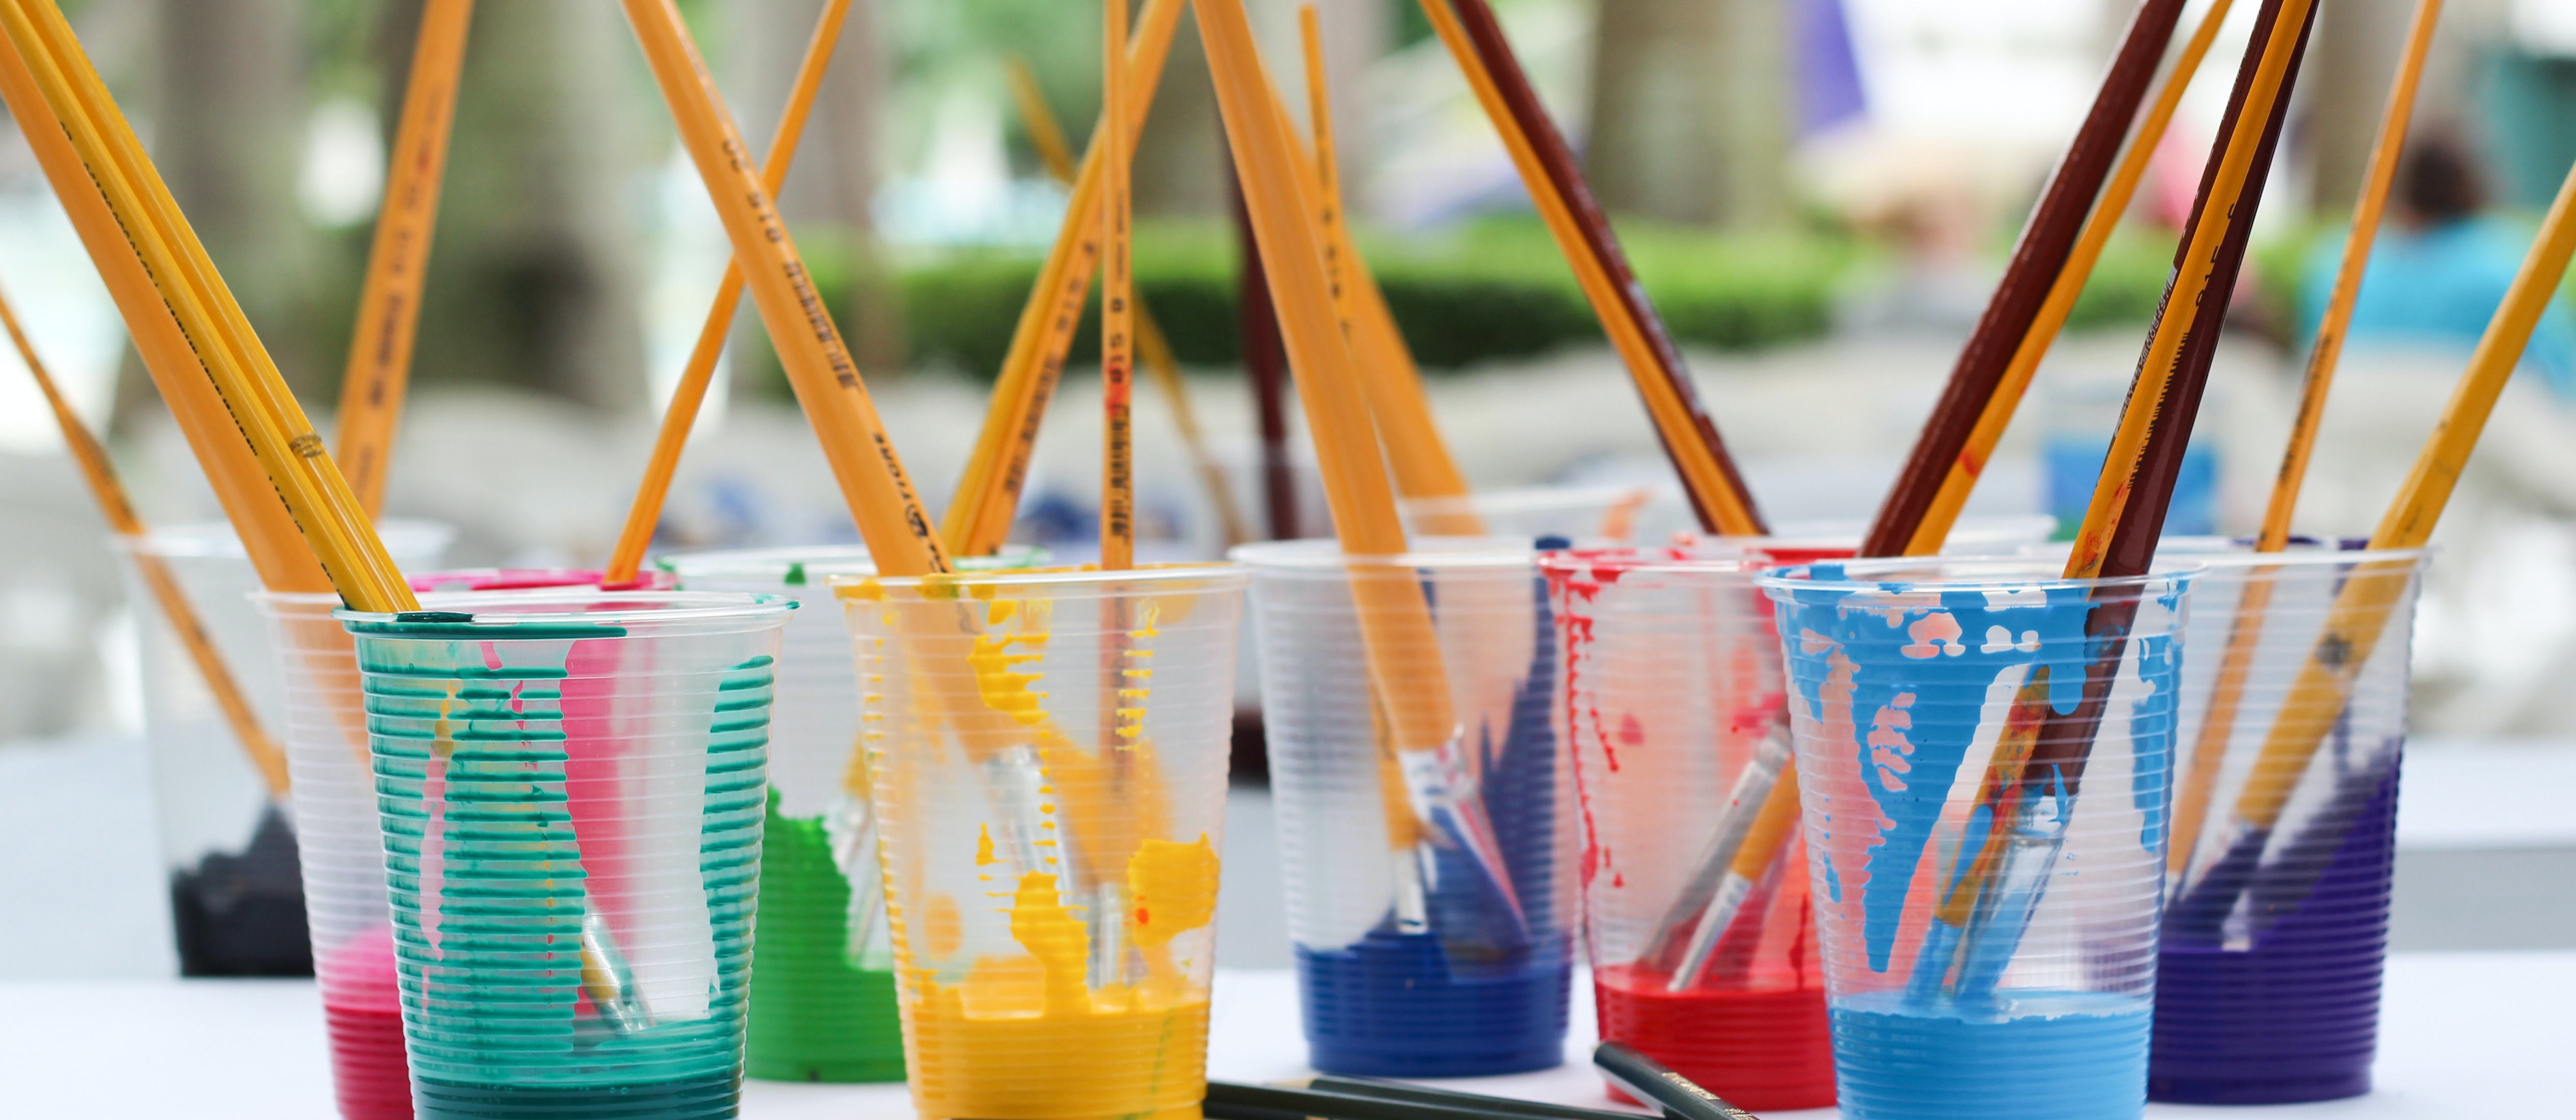 paint and brushes in cups